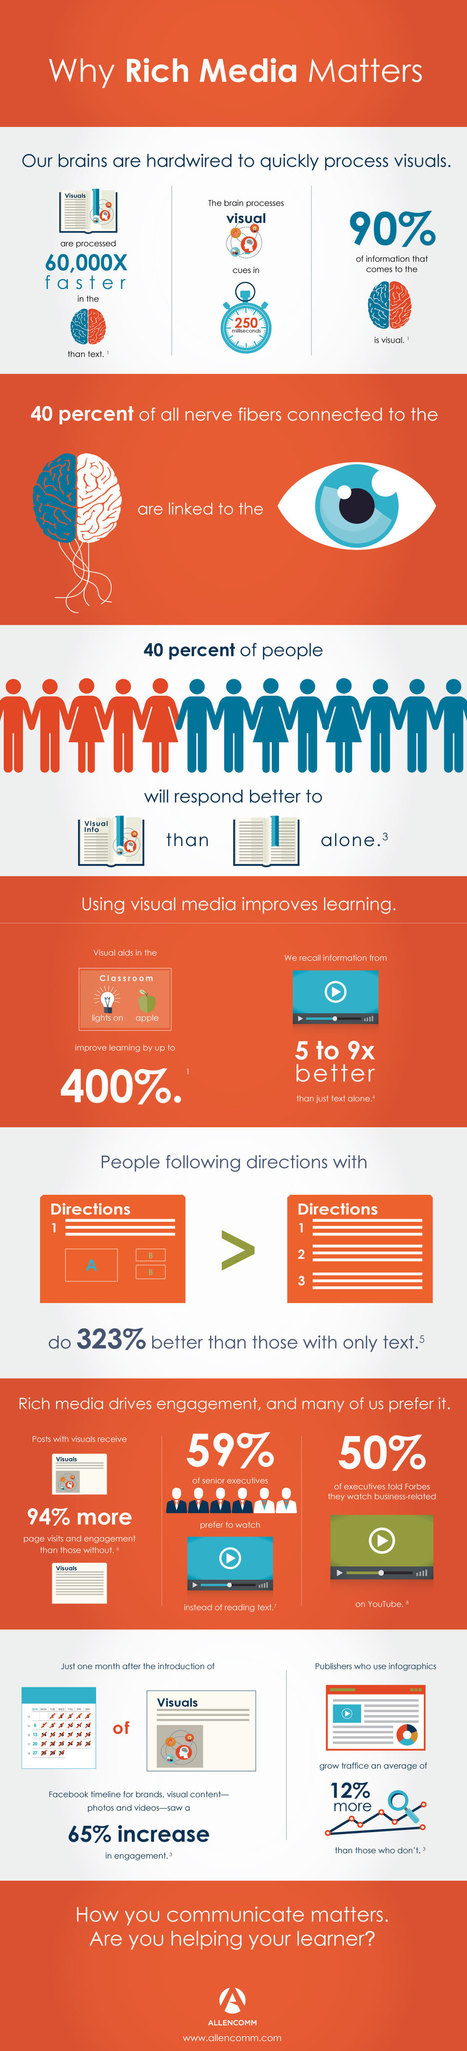 Boosting Learner Engagement with Rich Media Infographic | digital marketing strategy | Scoop.it